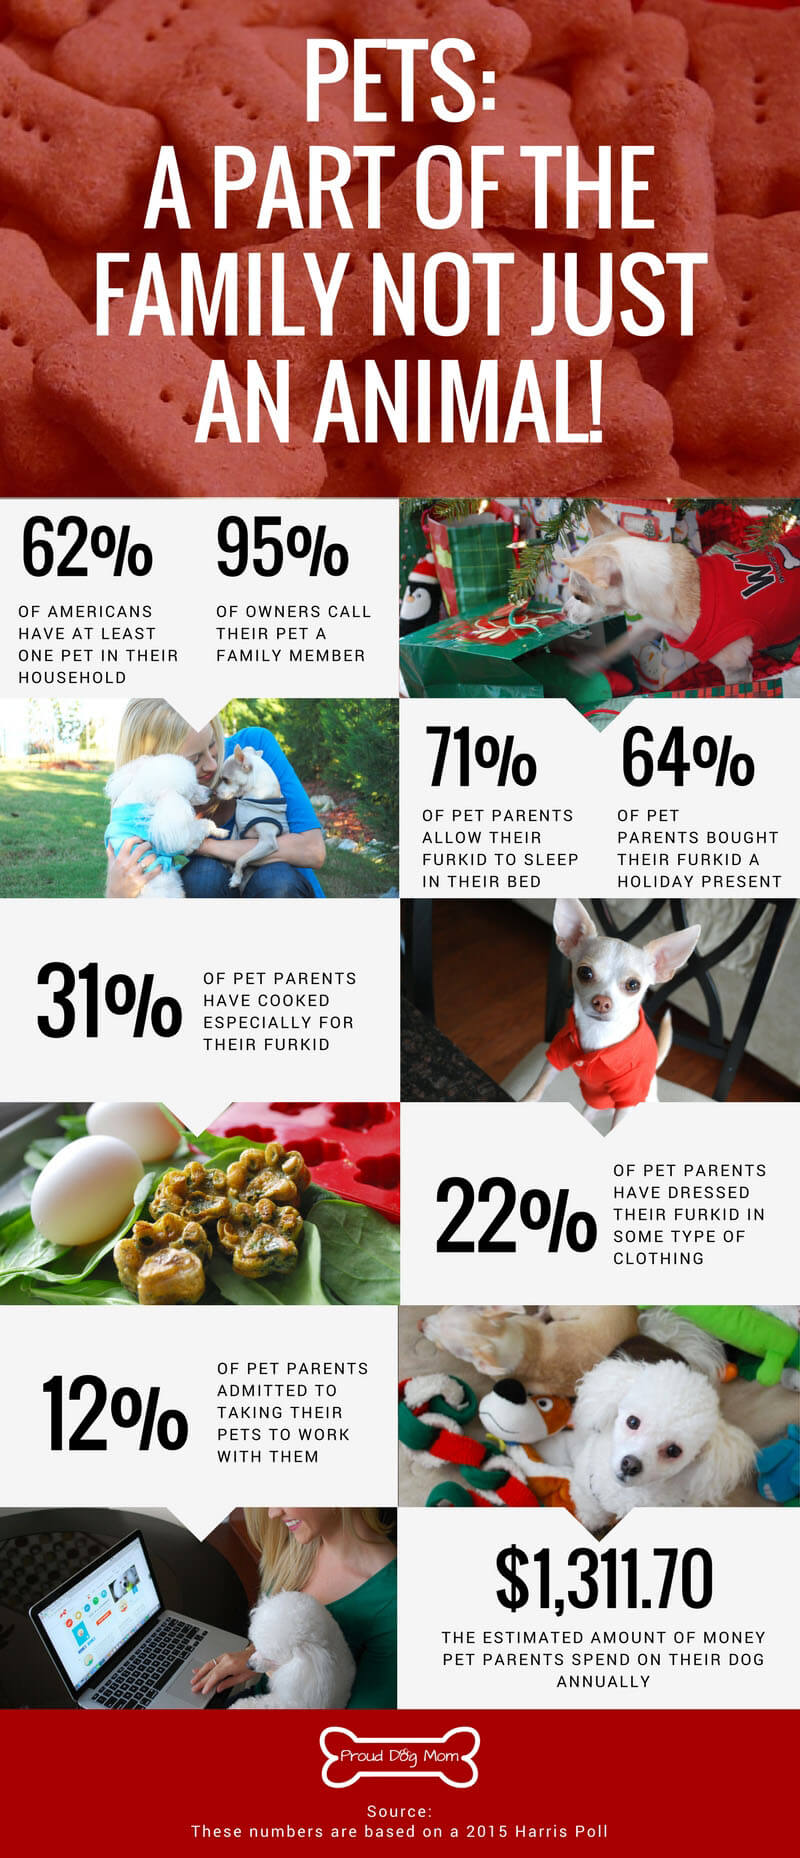 Are Pets Family Members? Check Out This Poll!